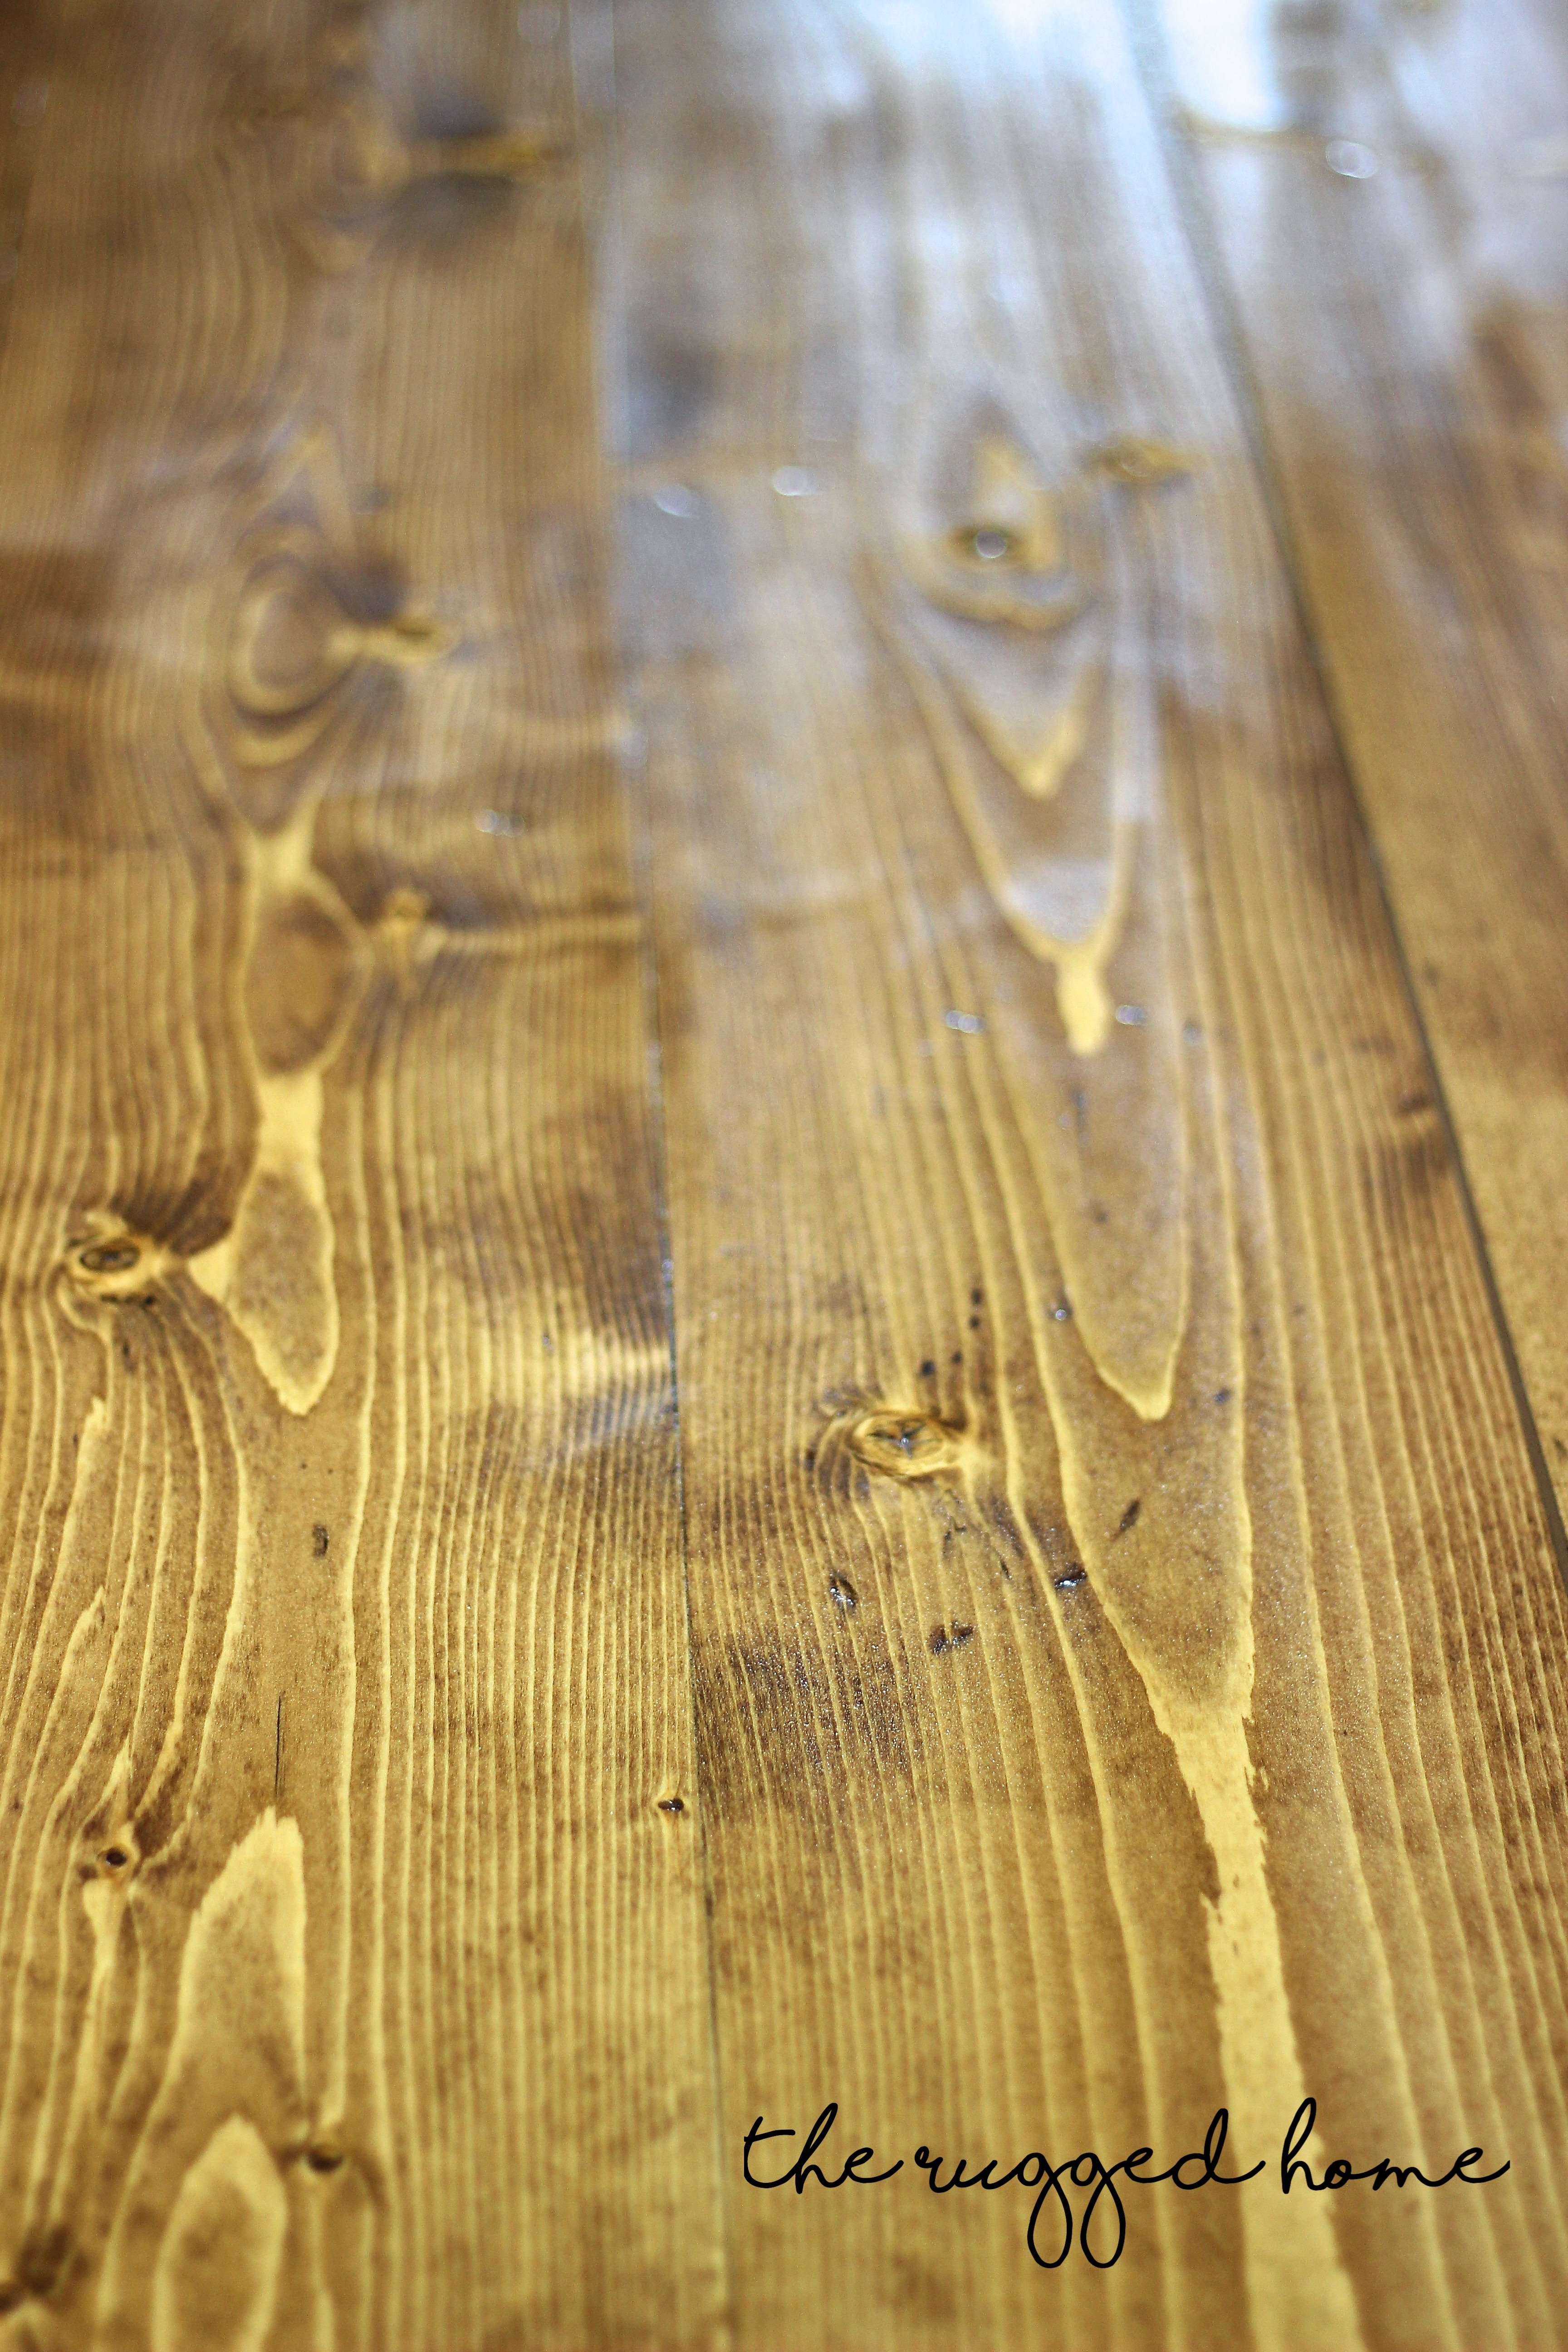 Make New Wood Look Aged, DIY Barnwood, How To Stain Rustic Furniture, How To Stain, Make Barnwood out of new wood